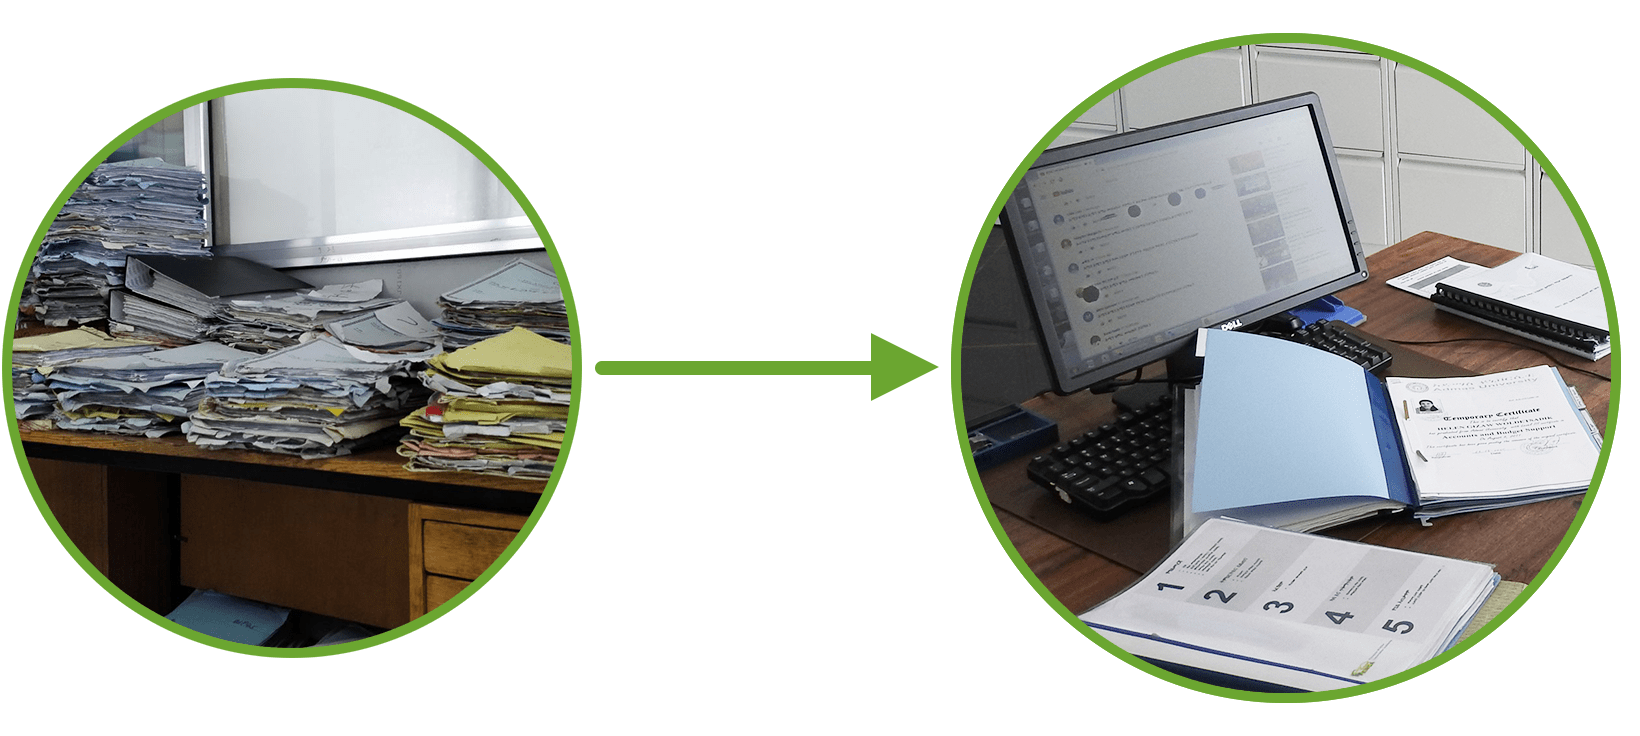 Introduction of digital personnel files